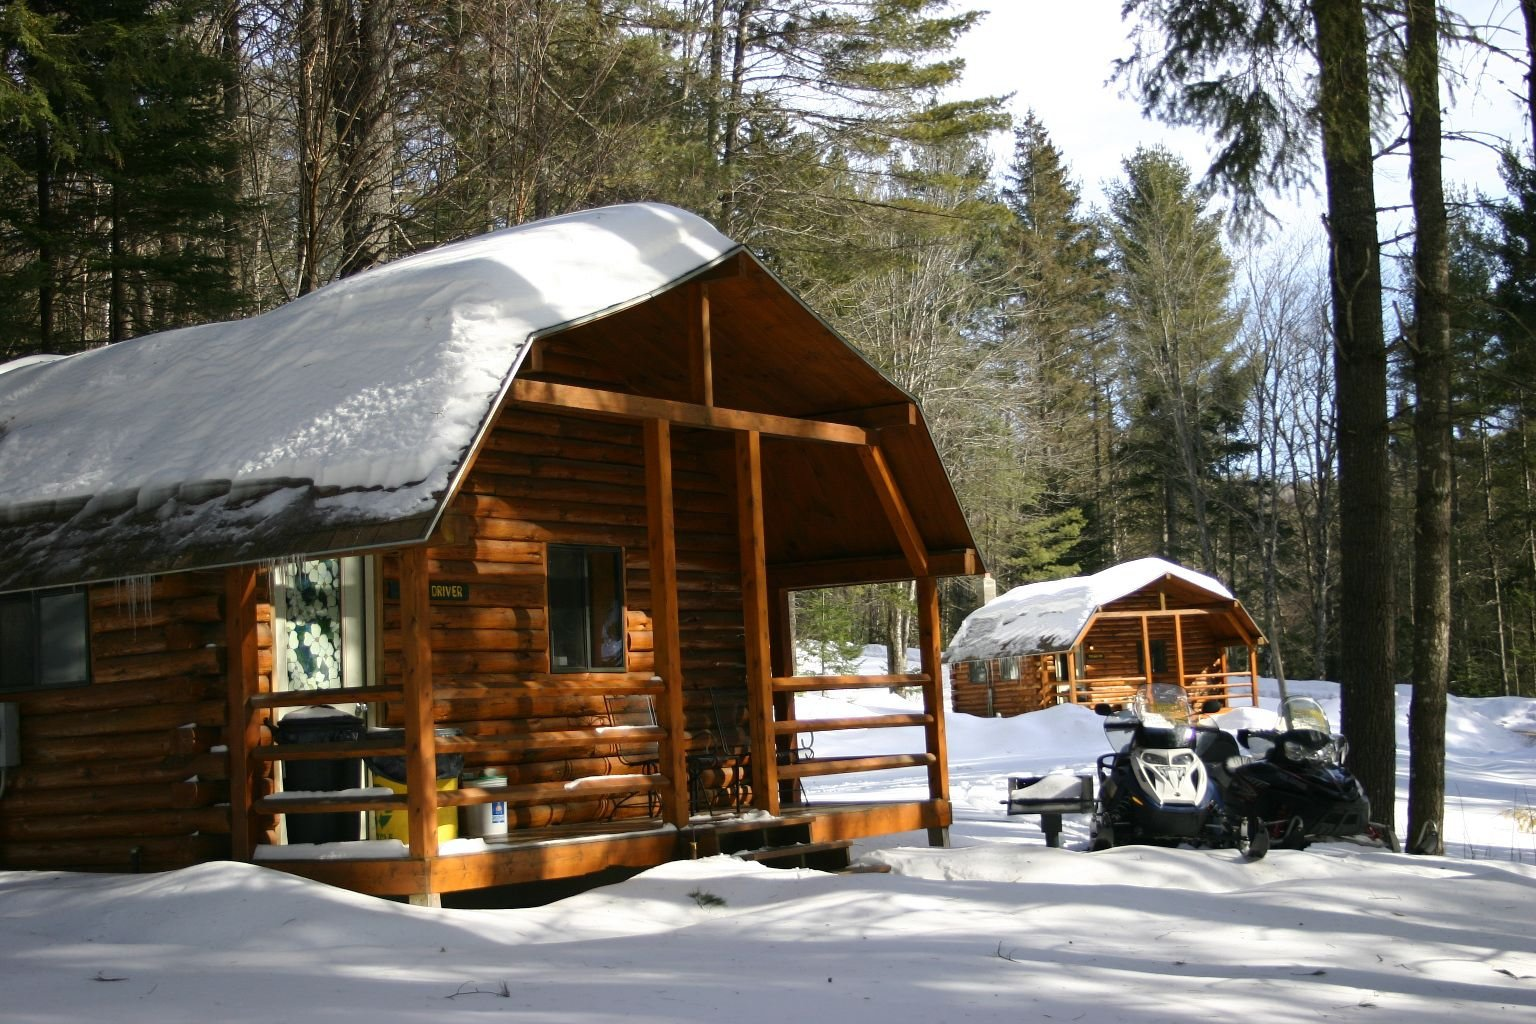 From 2 person cozy cabins to larger luxury log cabins, you'll get the best cabins in western Maine.